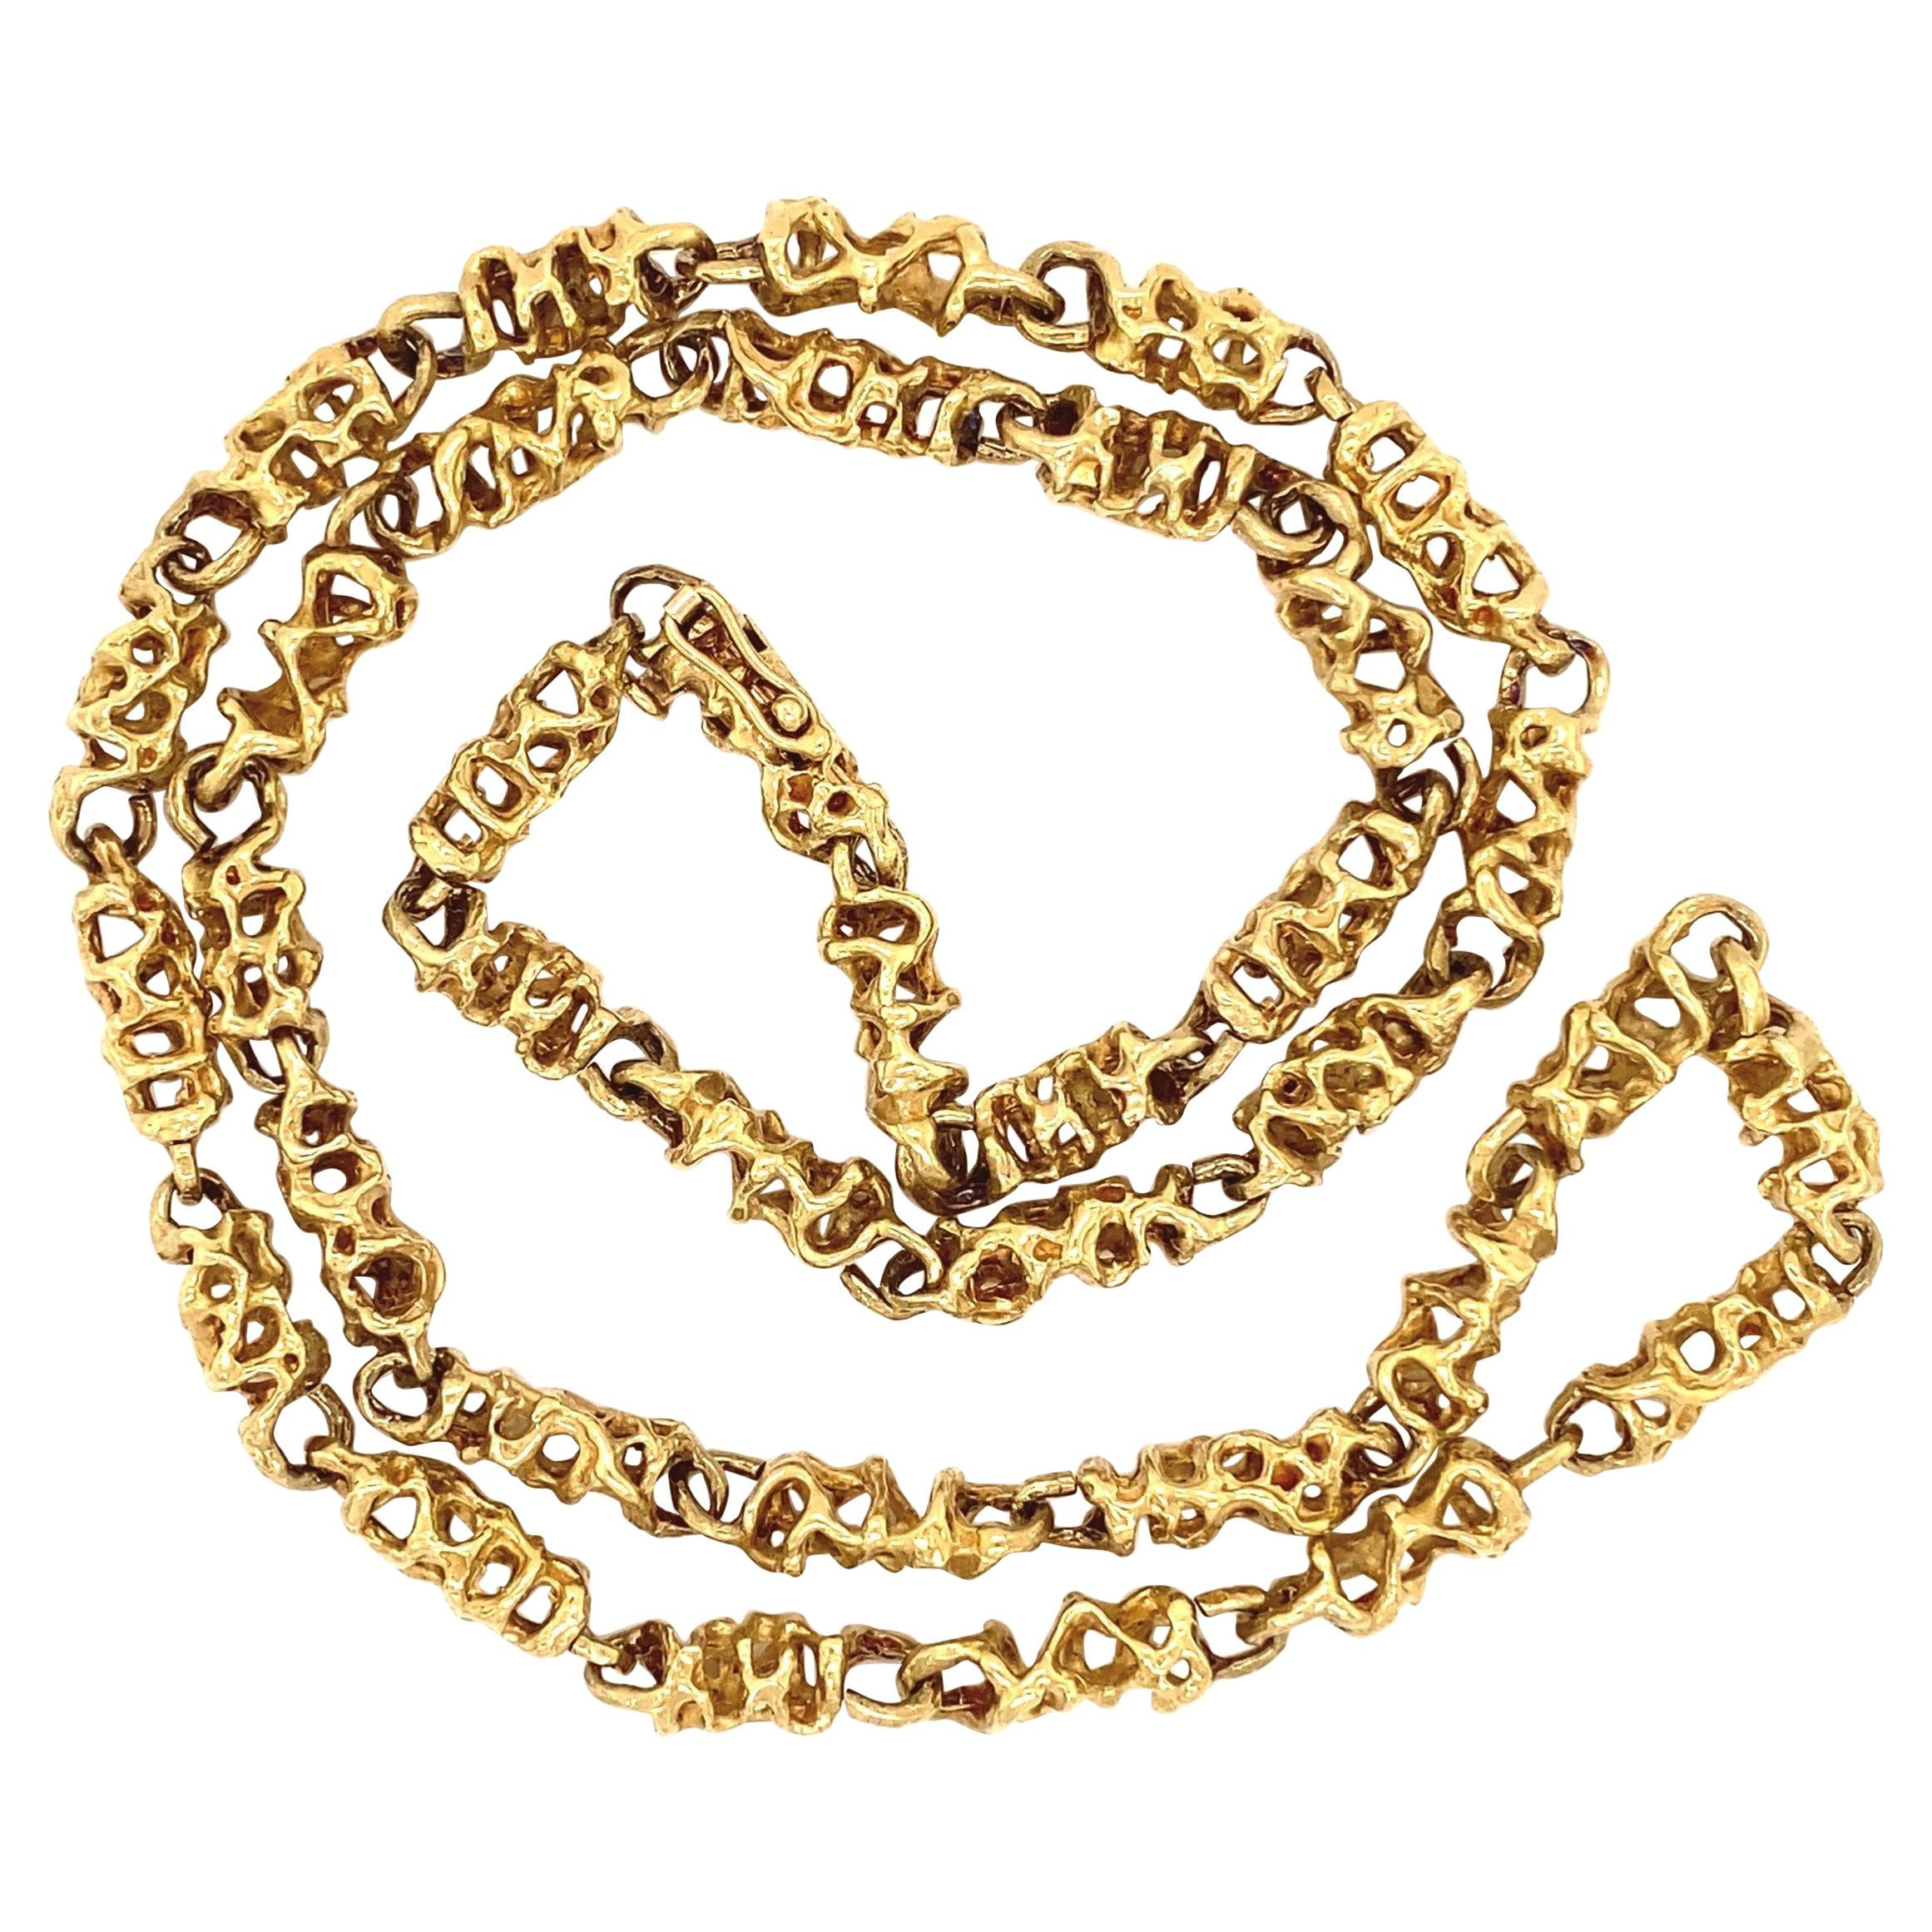 Iconic Designer Ed Wiener Heavy 18 Karat Gold Abstract Link Chain Necklace